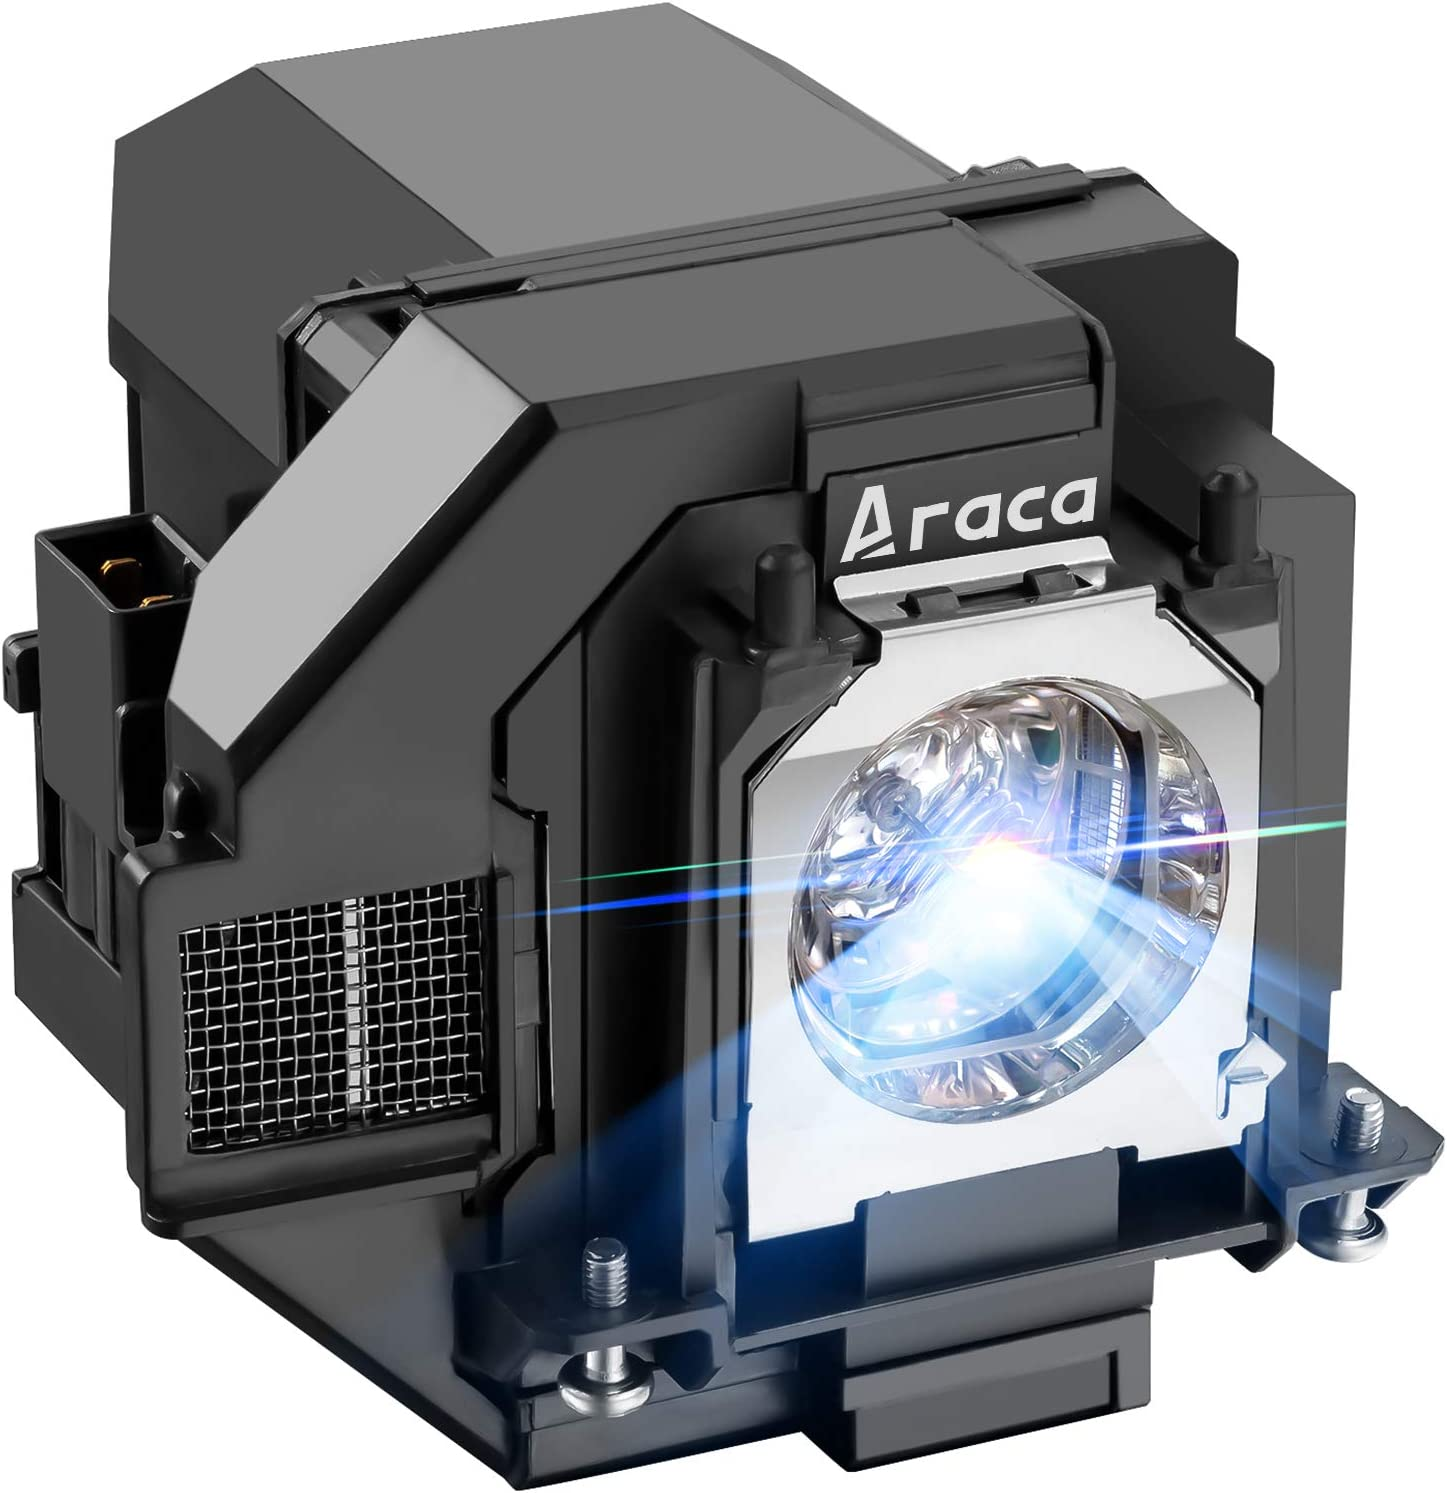 Araca ELPLP96 /V13H010L96 Replacement Projector Lamp for Epson VS250 VS355 EX5260 VS350 EB-S41 EH-TW650 TW610 TW5650 TW5600 X05 S05 U05 2042 2247U 2142W W05 990U U42 with Housing (New A+ Version)